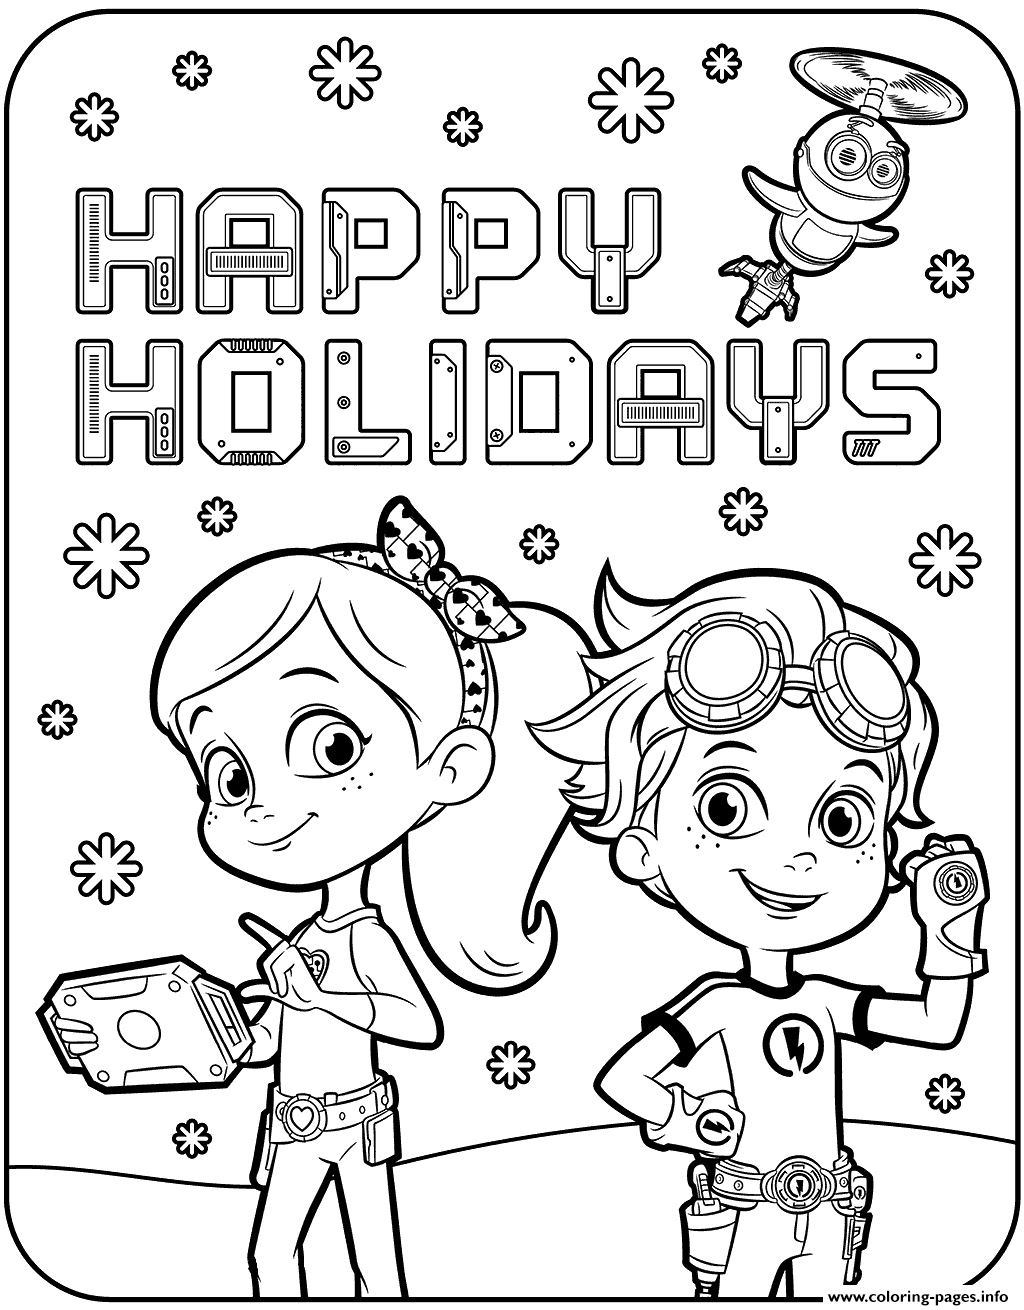 Happy holidays with rusty rivets coloring pages printable